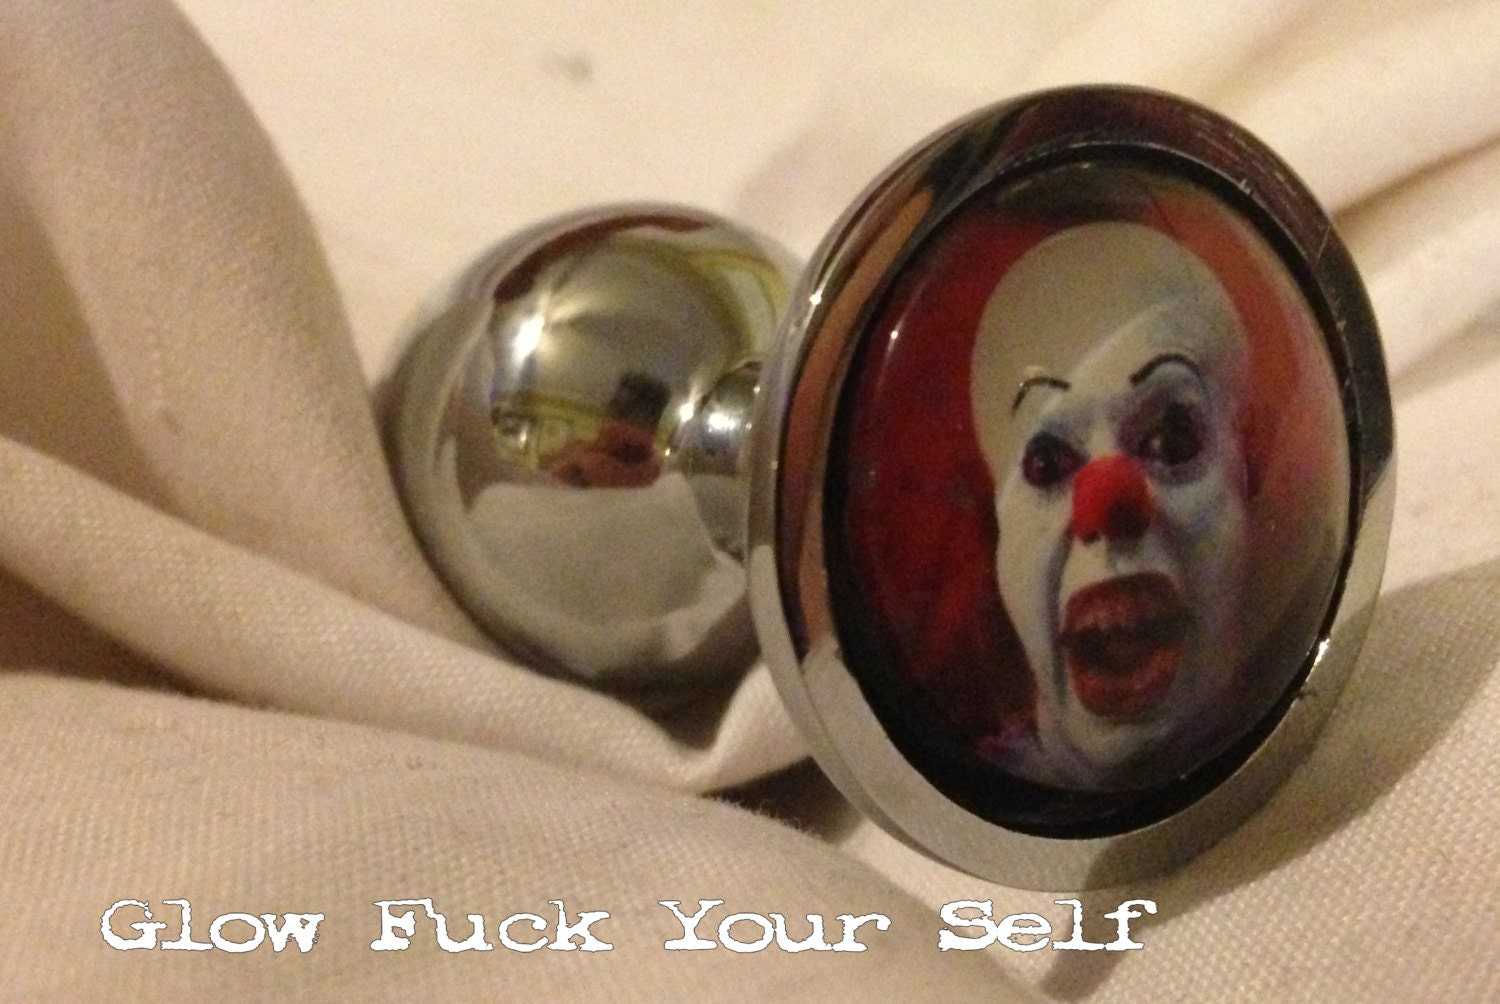 Mature Scary Clown Butt Plug Because Put It In Your Butt-9241